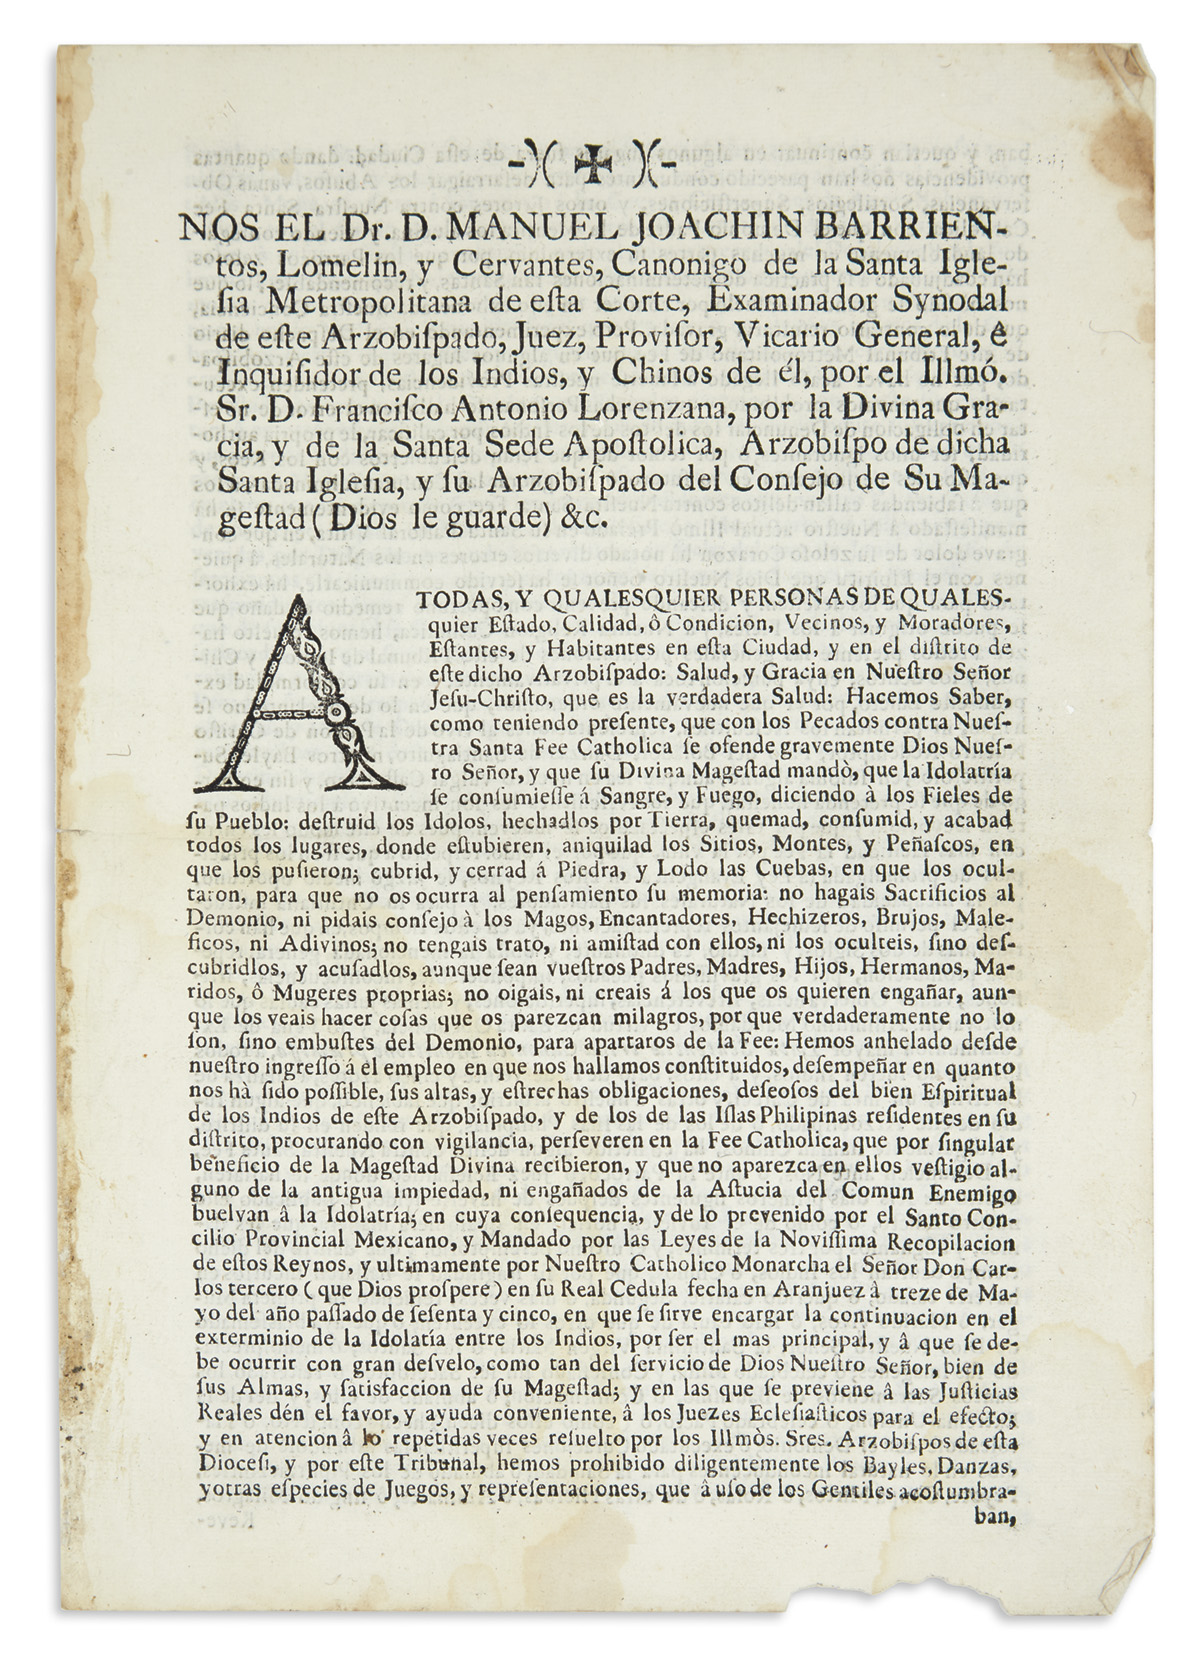 (MEXICAN IMPRINT--1769.) Barrientos Lomelin, Manuel Joaquín. Inquisition decree on the extermination of idolatry among the Indians.